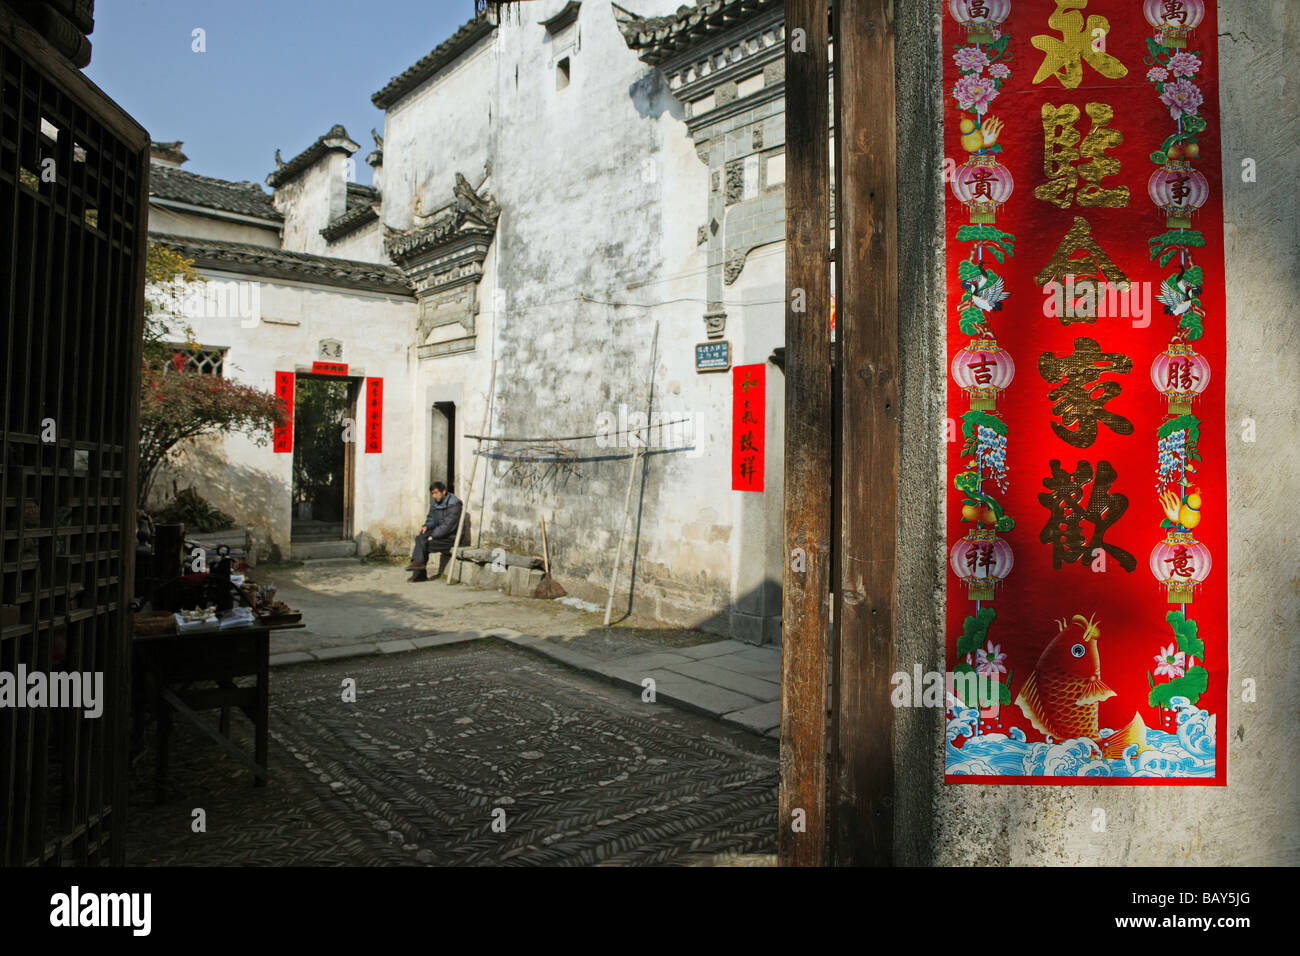 Open Gate With New Years Decoration View At A Courtyard Hongcun